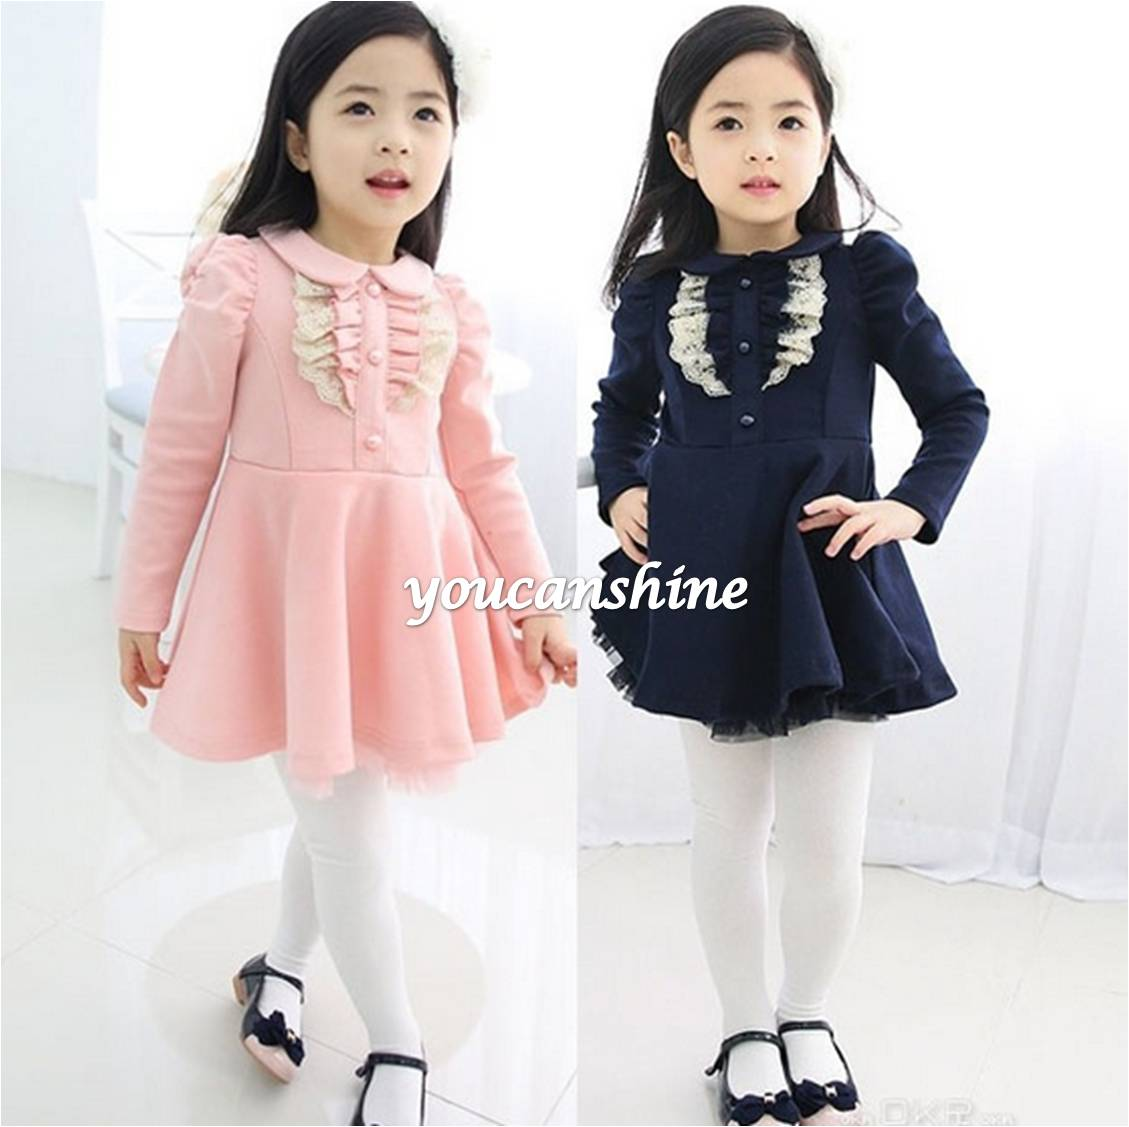 2016 New Kids Baby Girls Princess Lace Turn Down Collar Button Down Tops Preppy School Party Pleated Dress 2-7T<br><br>Aliexpress